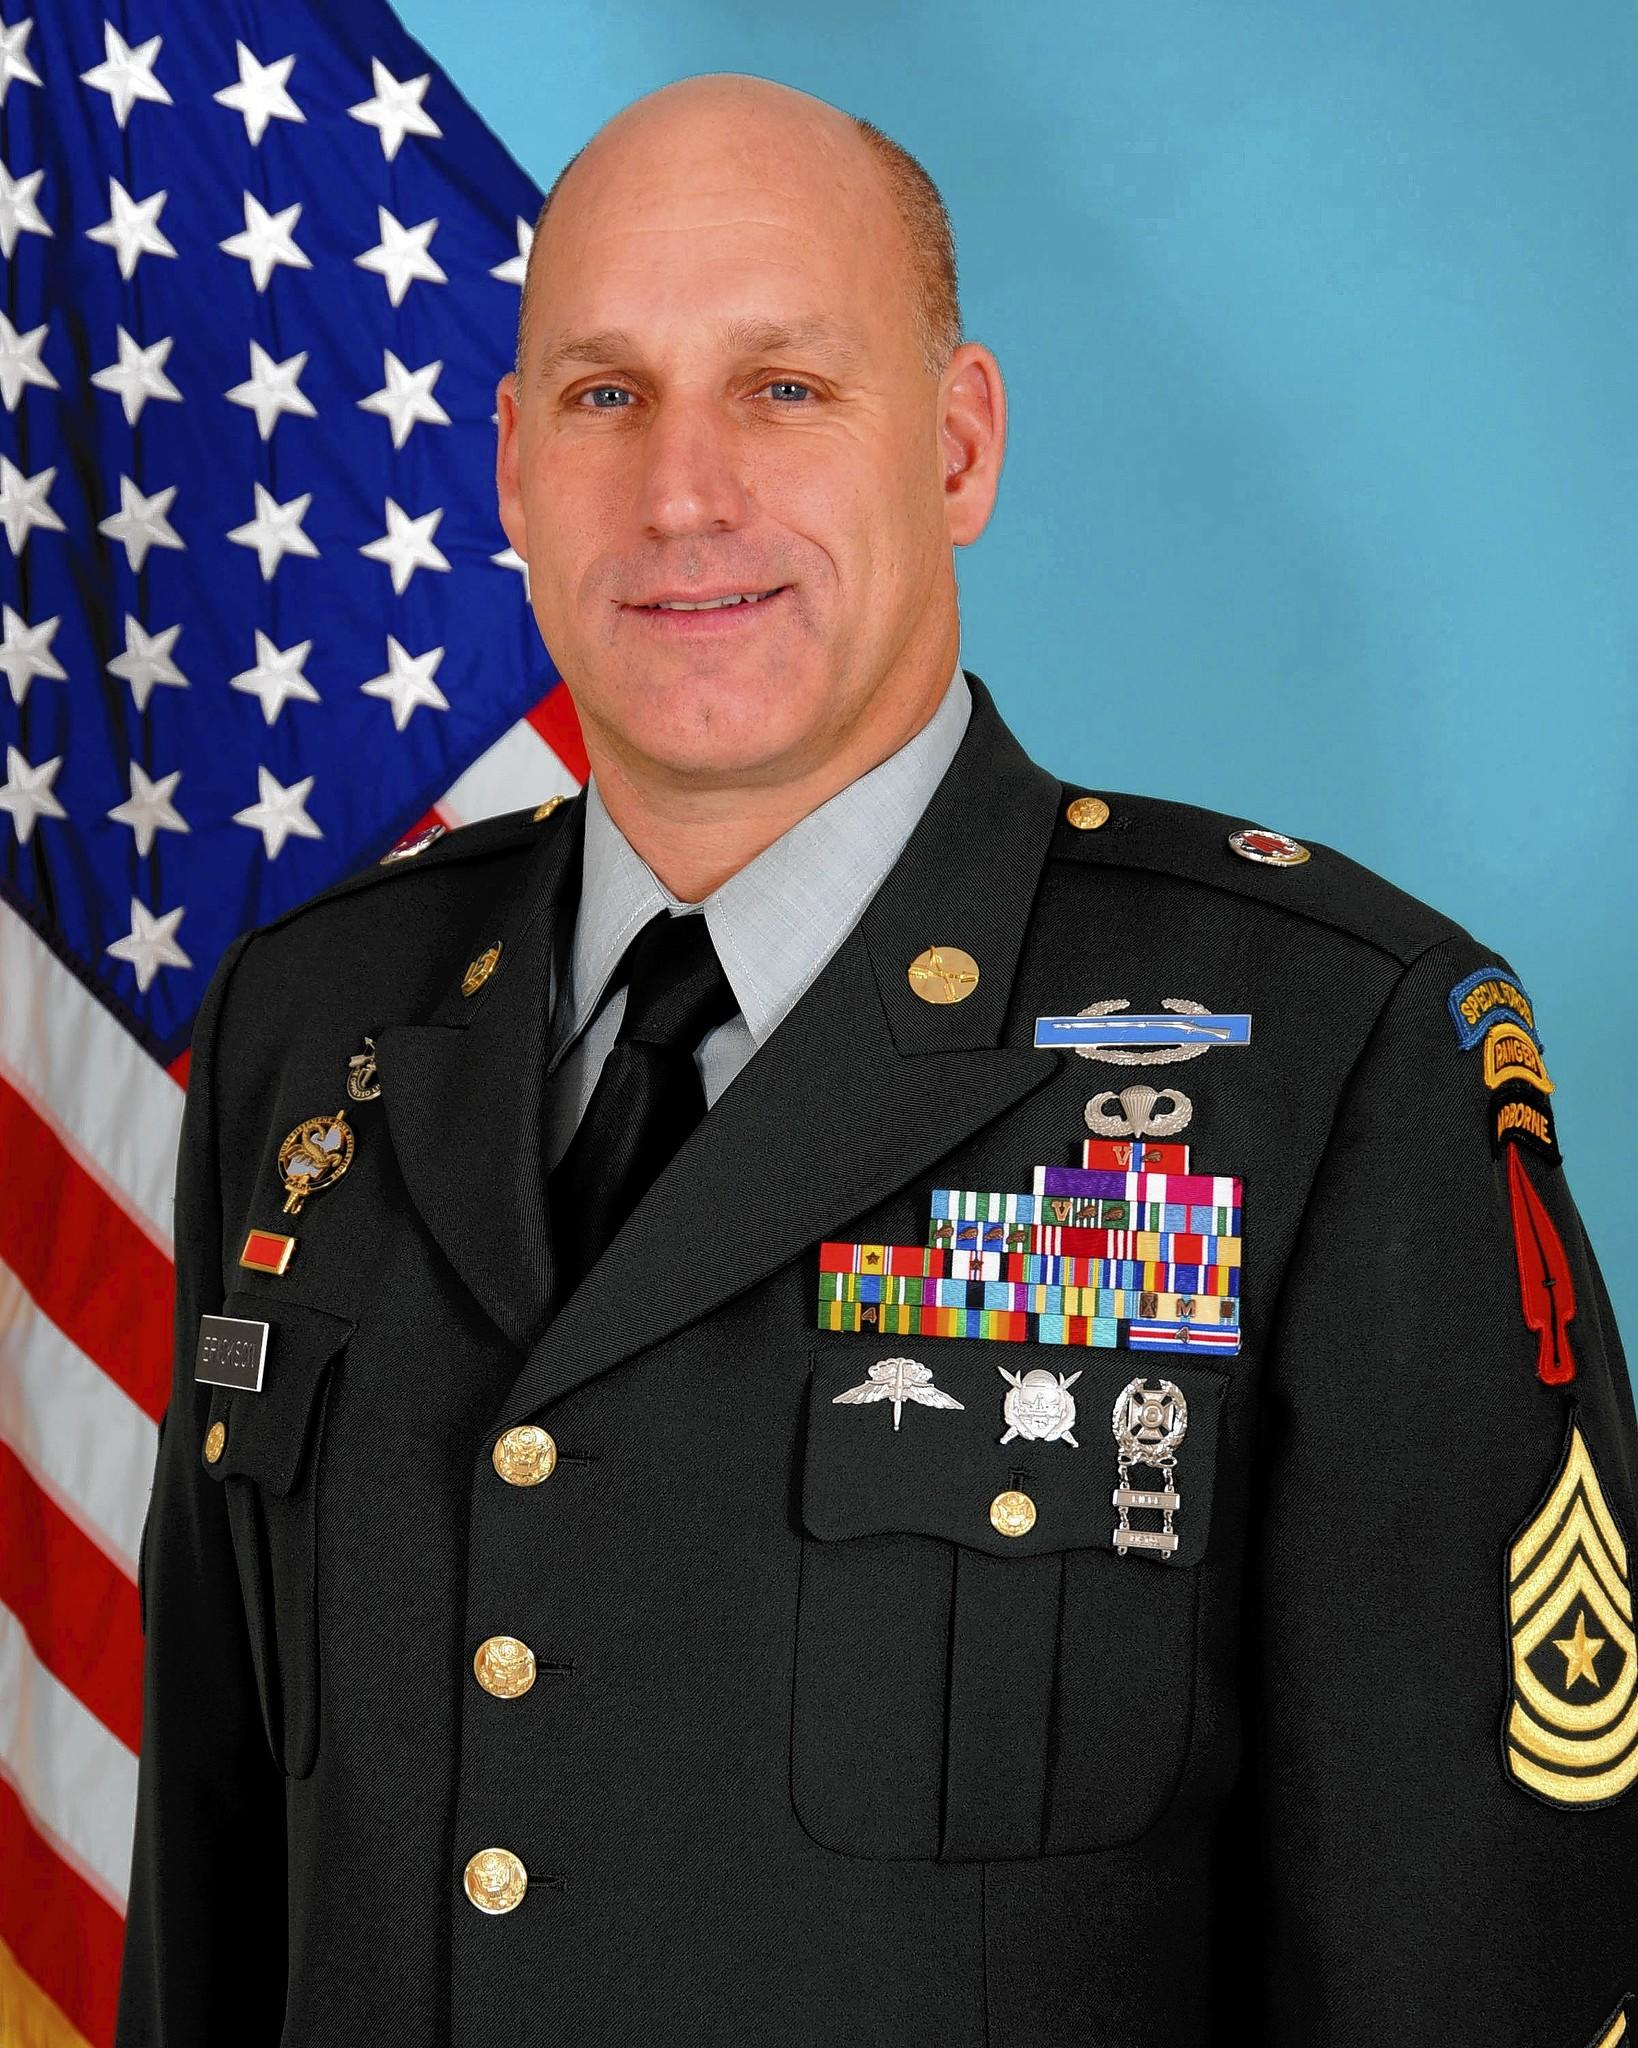 Sgt. Maj. Richard Erickson was awarded reinstatment and back pay after being fired by the Postal Service while serving overseas in the National Guard in 2000.